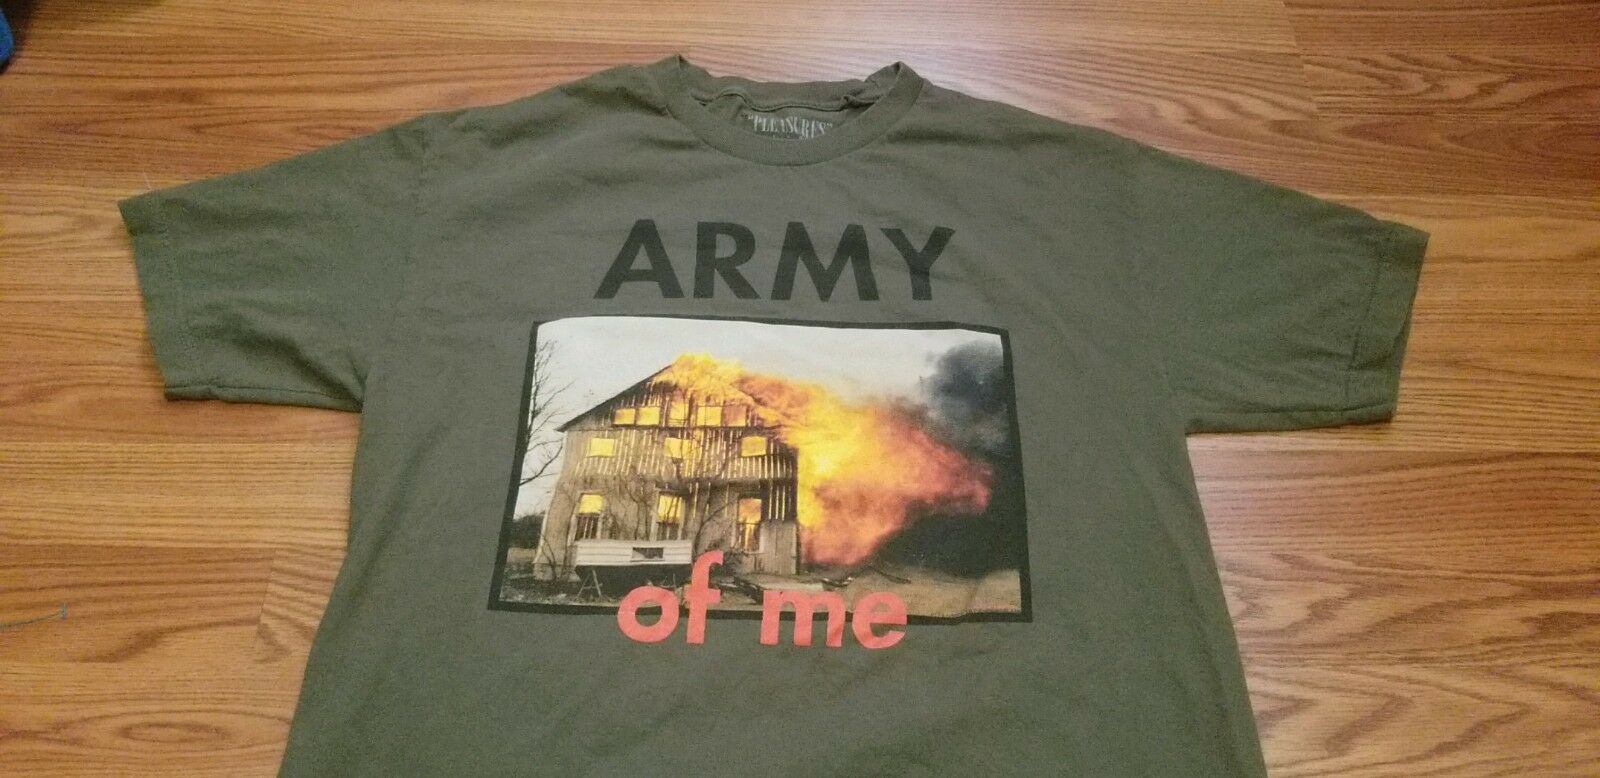 PLEASURES ARMY OF ME T SHIRT SZ L